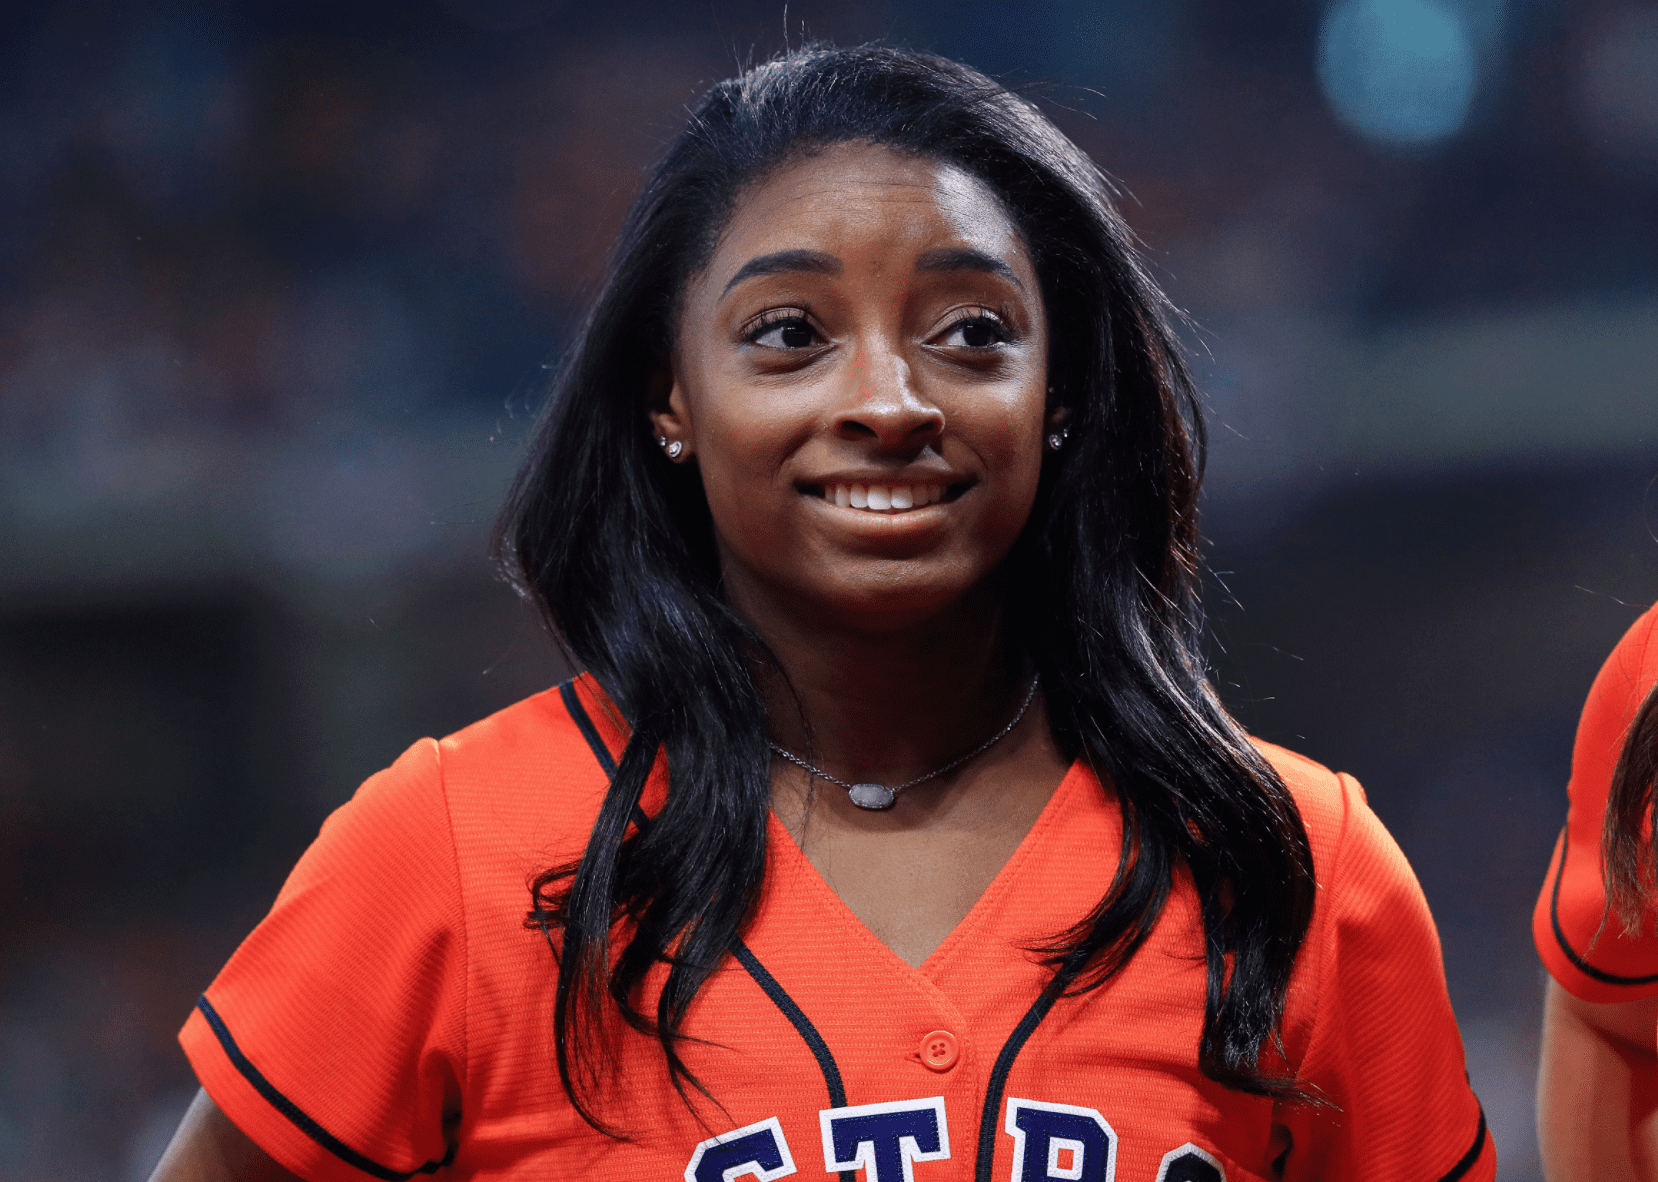 Simone Biles at a game between the Houston Astros and the Washington Nationals on October 23, 2019.   Source: Getty Images